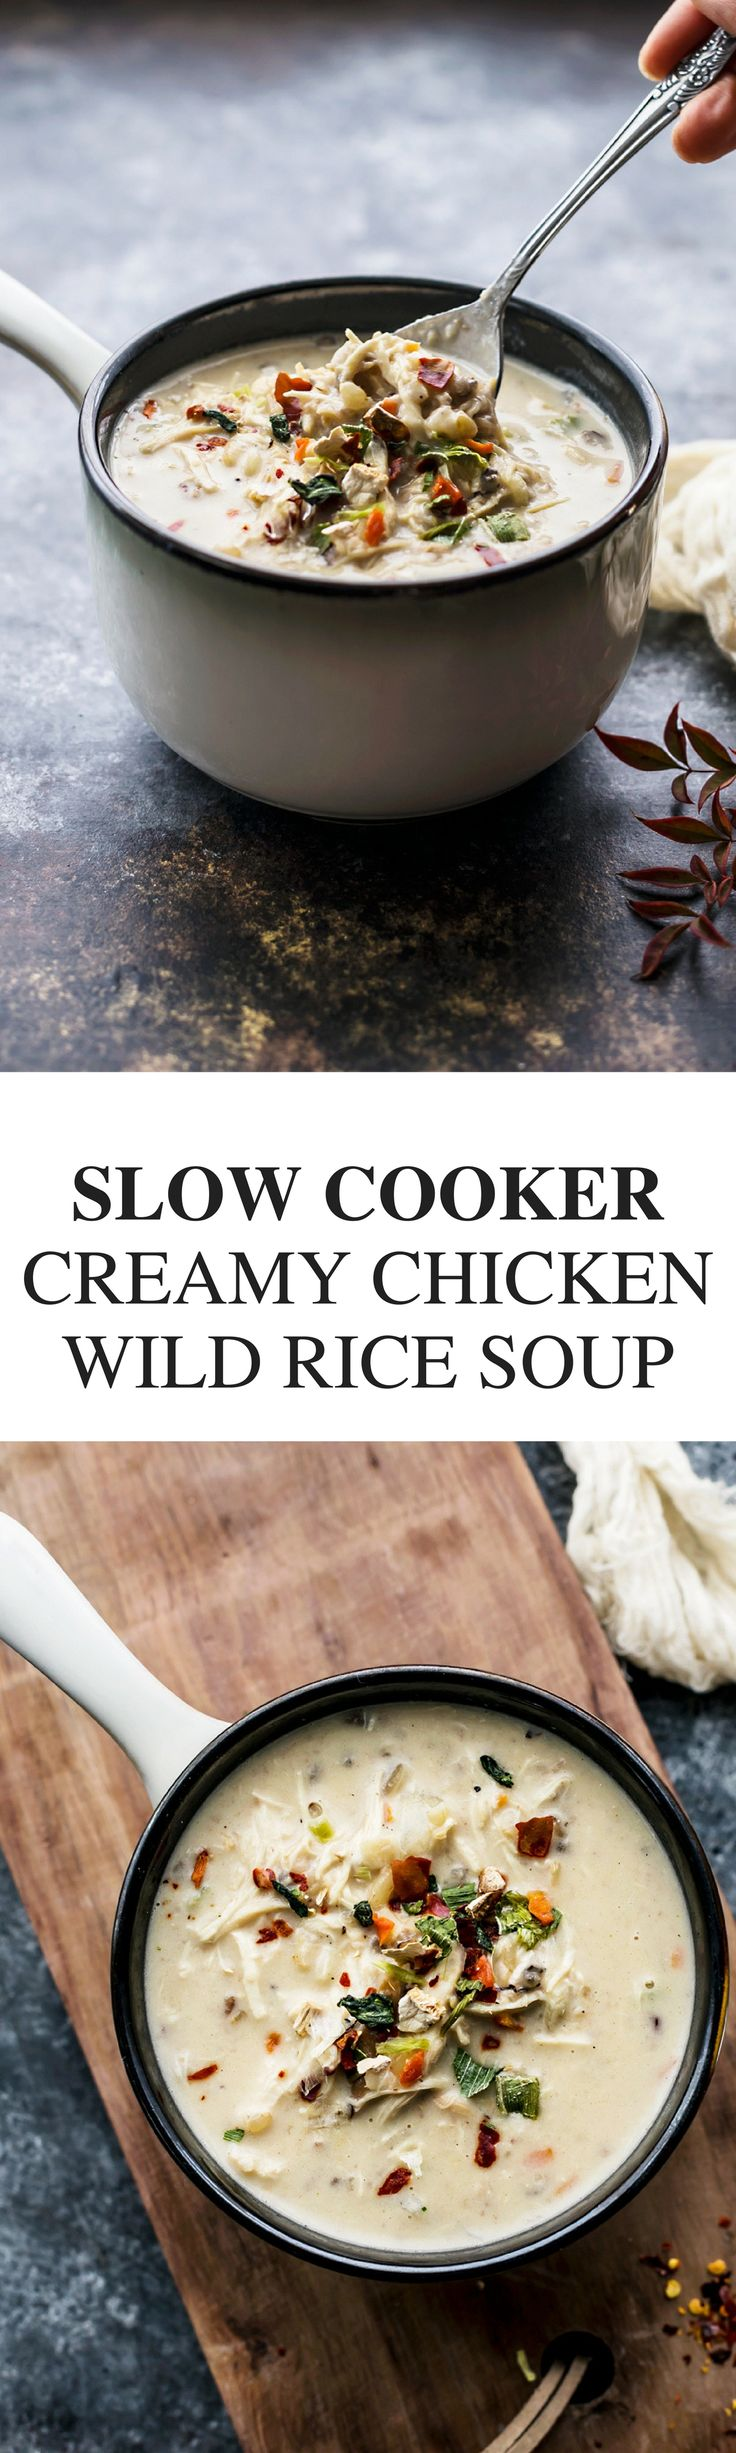 Slow Cooker Creamy Chicken Wild Rice Soup via @thedealmatch